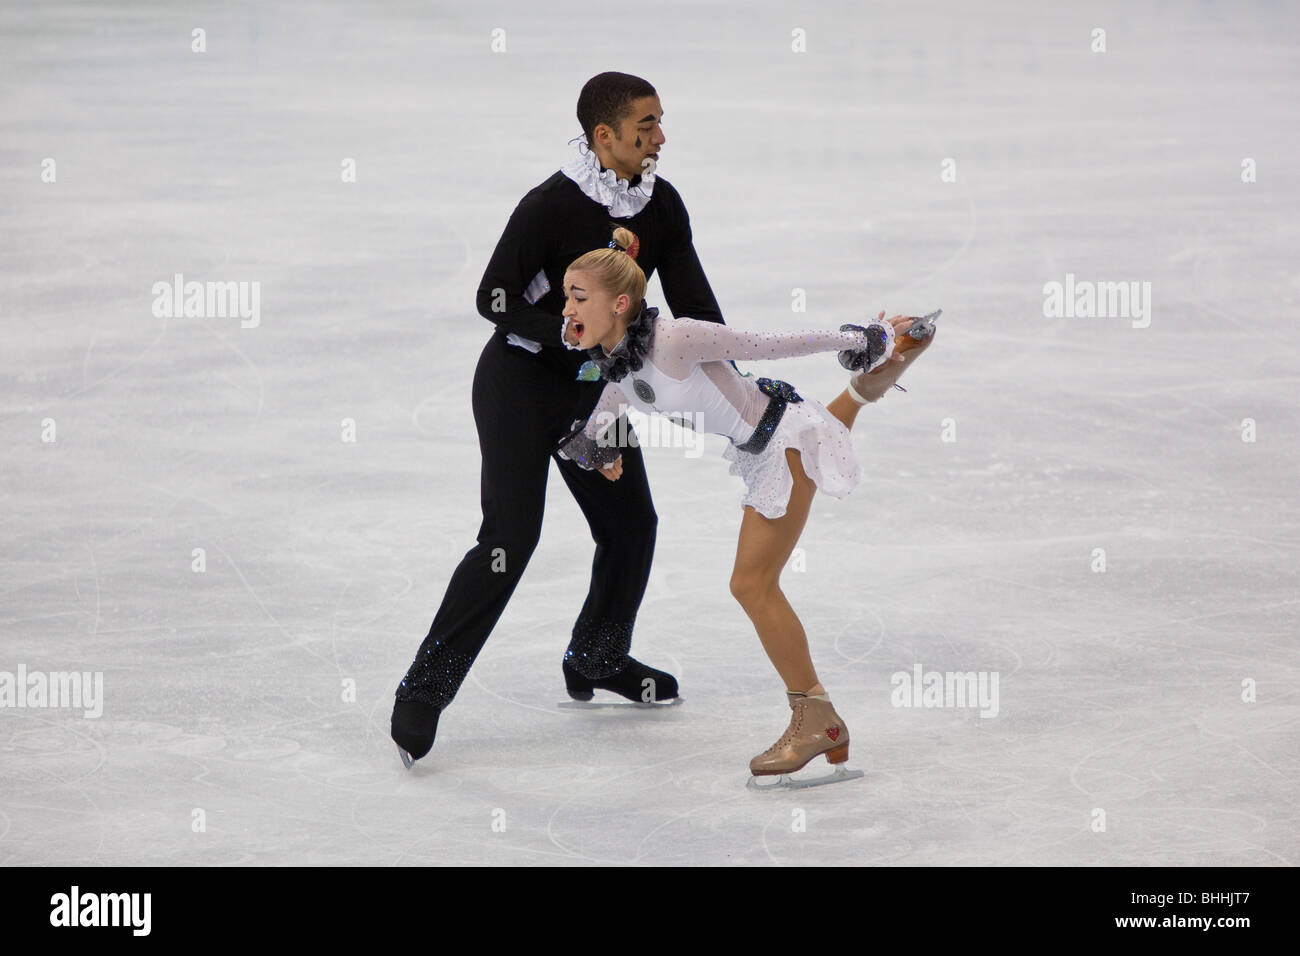 Aliona Savchenko and Robin Szolkowy (GER) competing in the pairs short the 2010 Olympic Winter Games - Stock Image